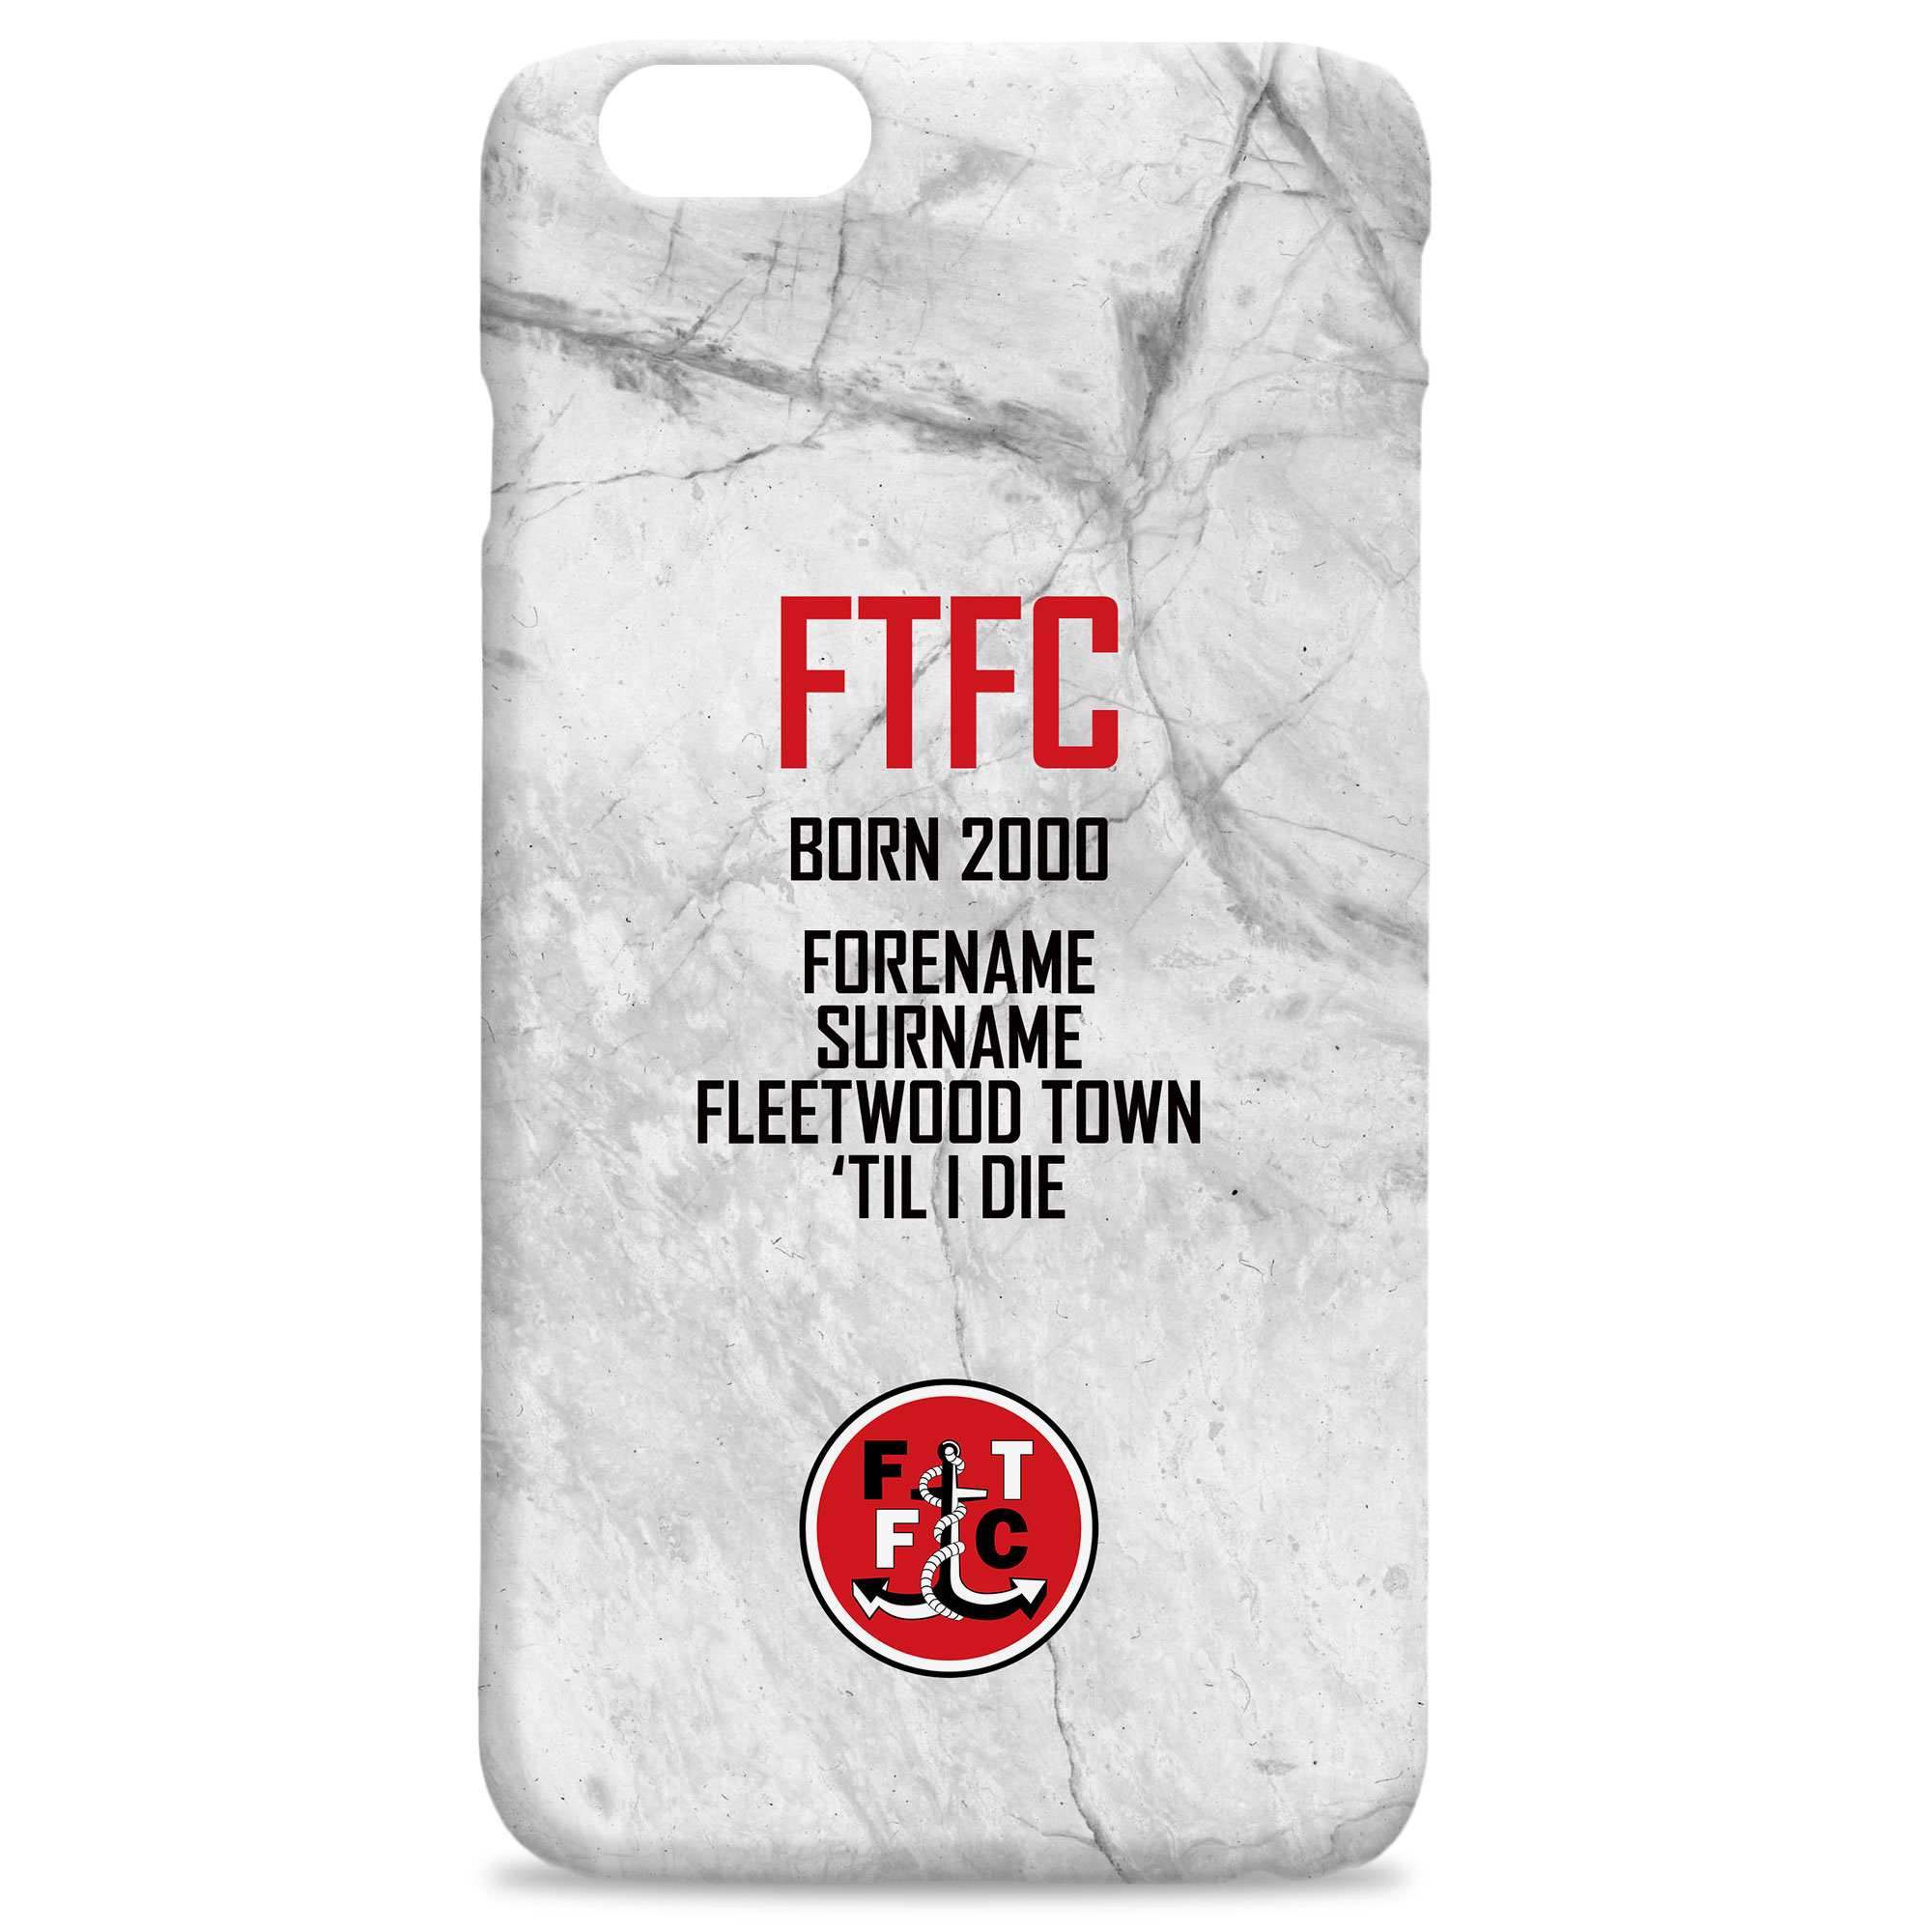 Fleetwood Town FC 'Til I Die Hard Back Phone Case